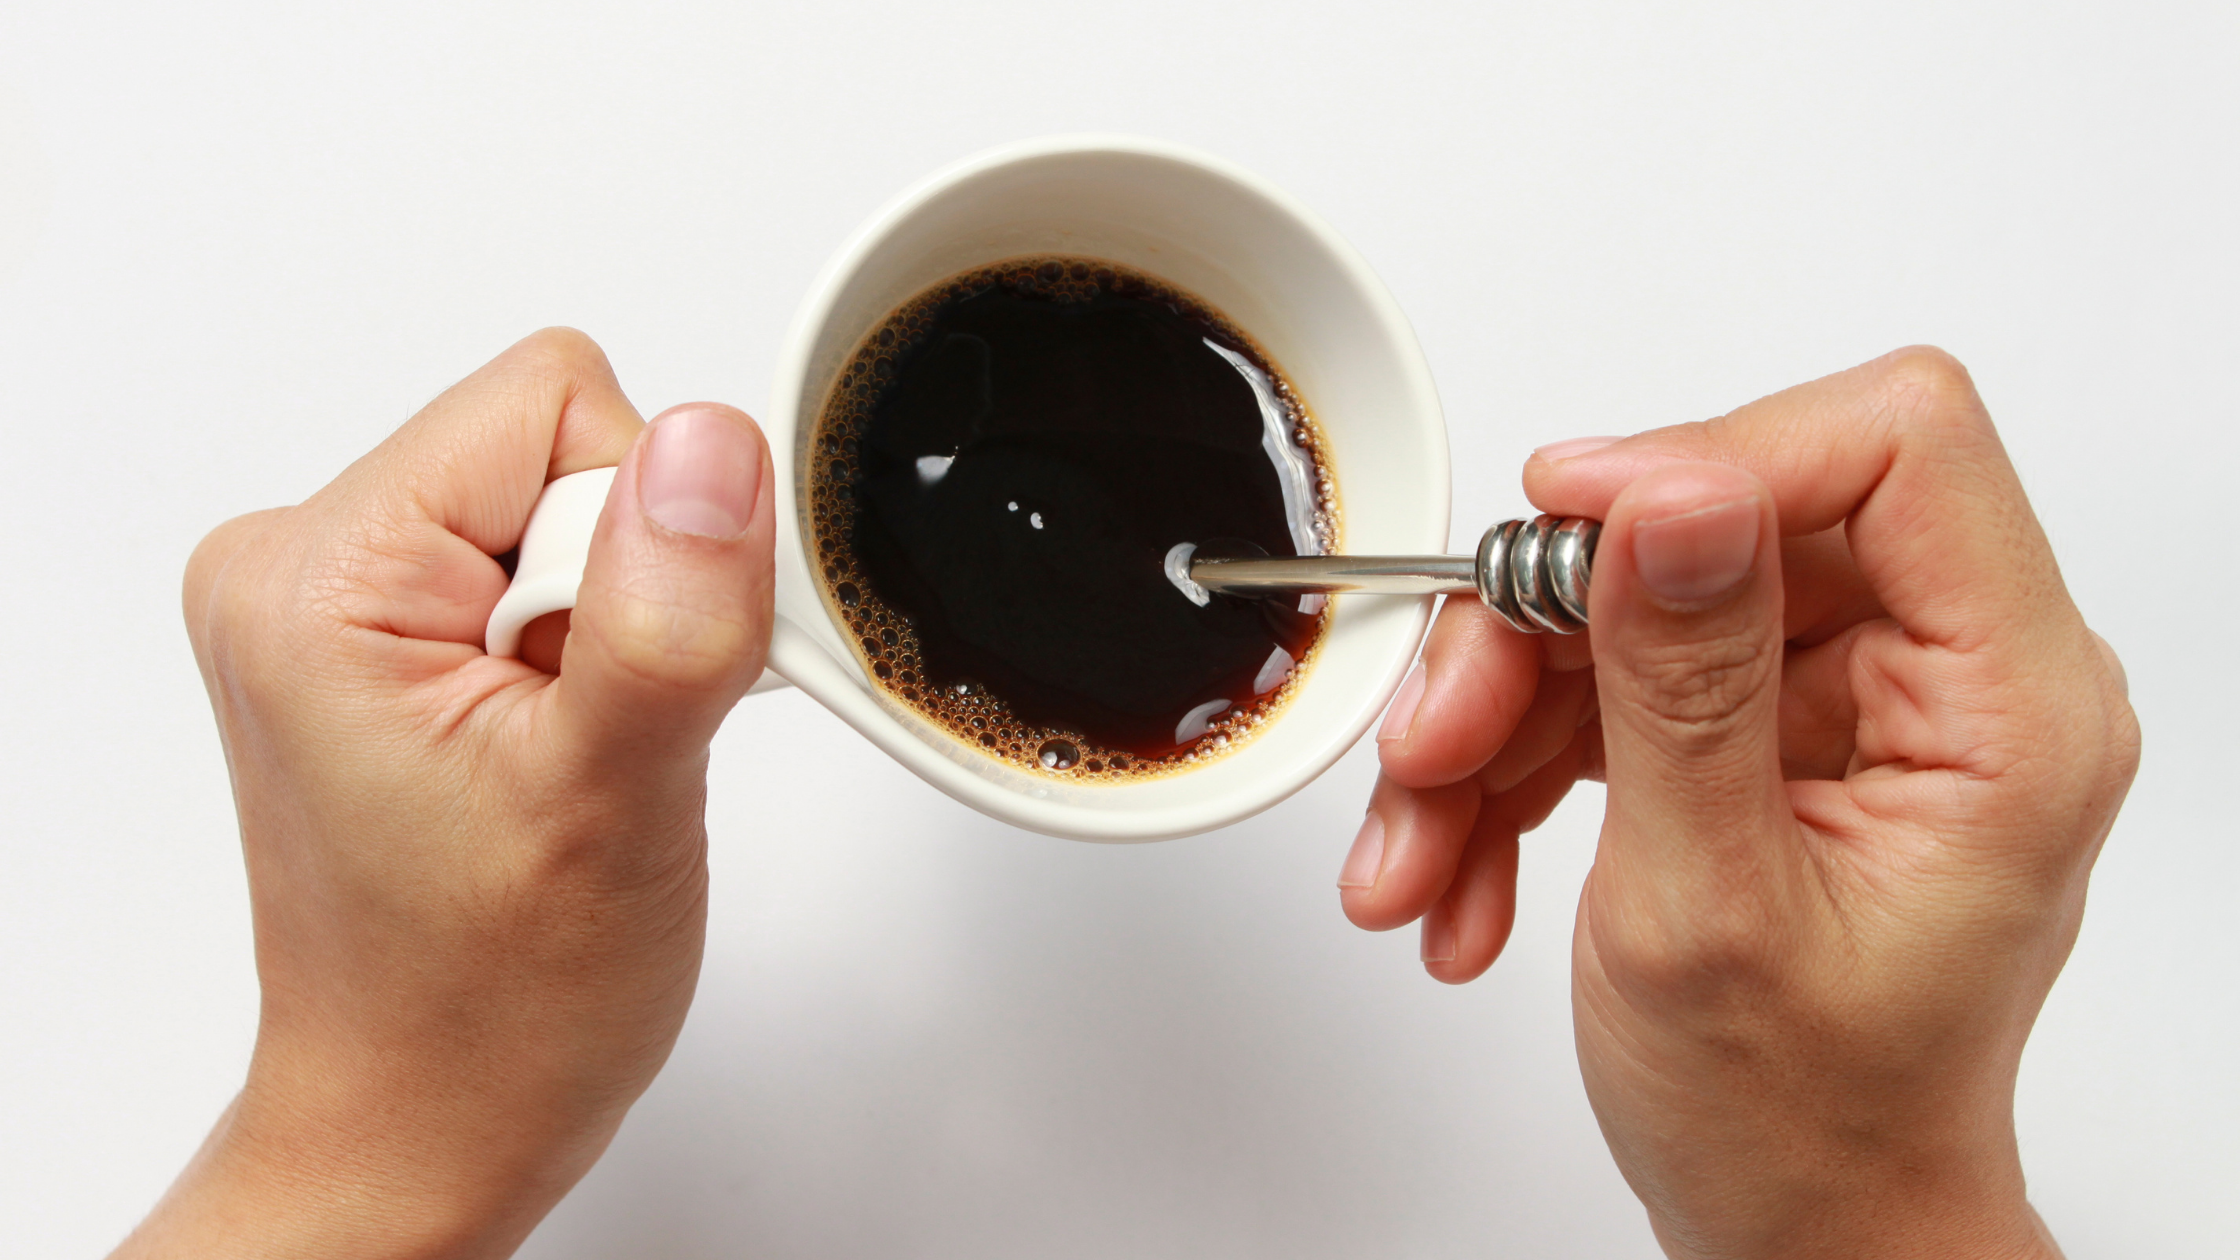 5 Proven Ways To Reduce Muscle Soreness - Black Coffee